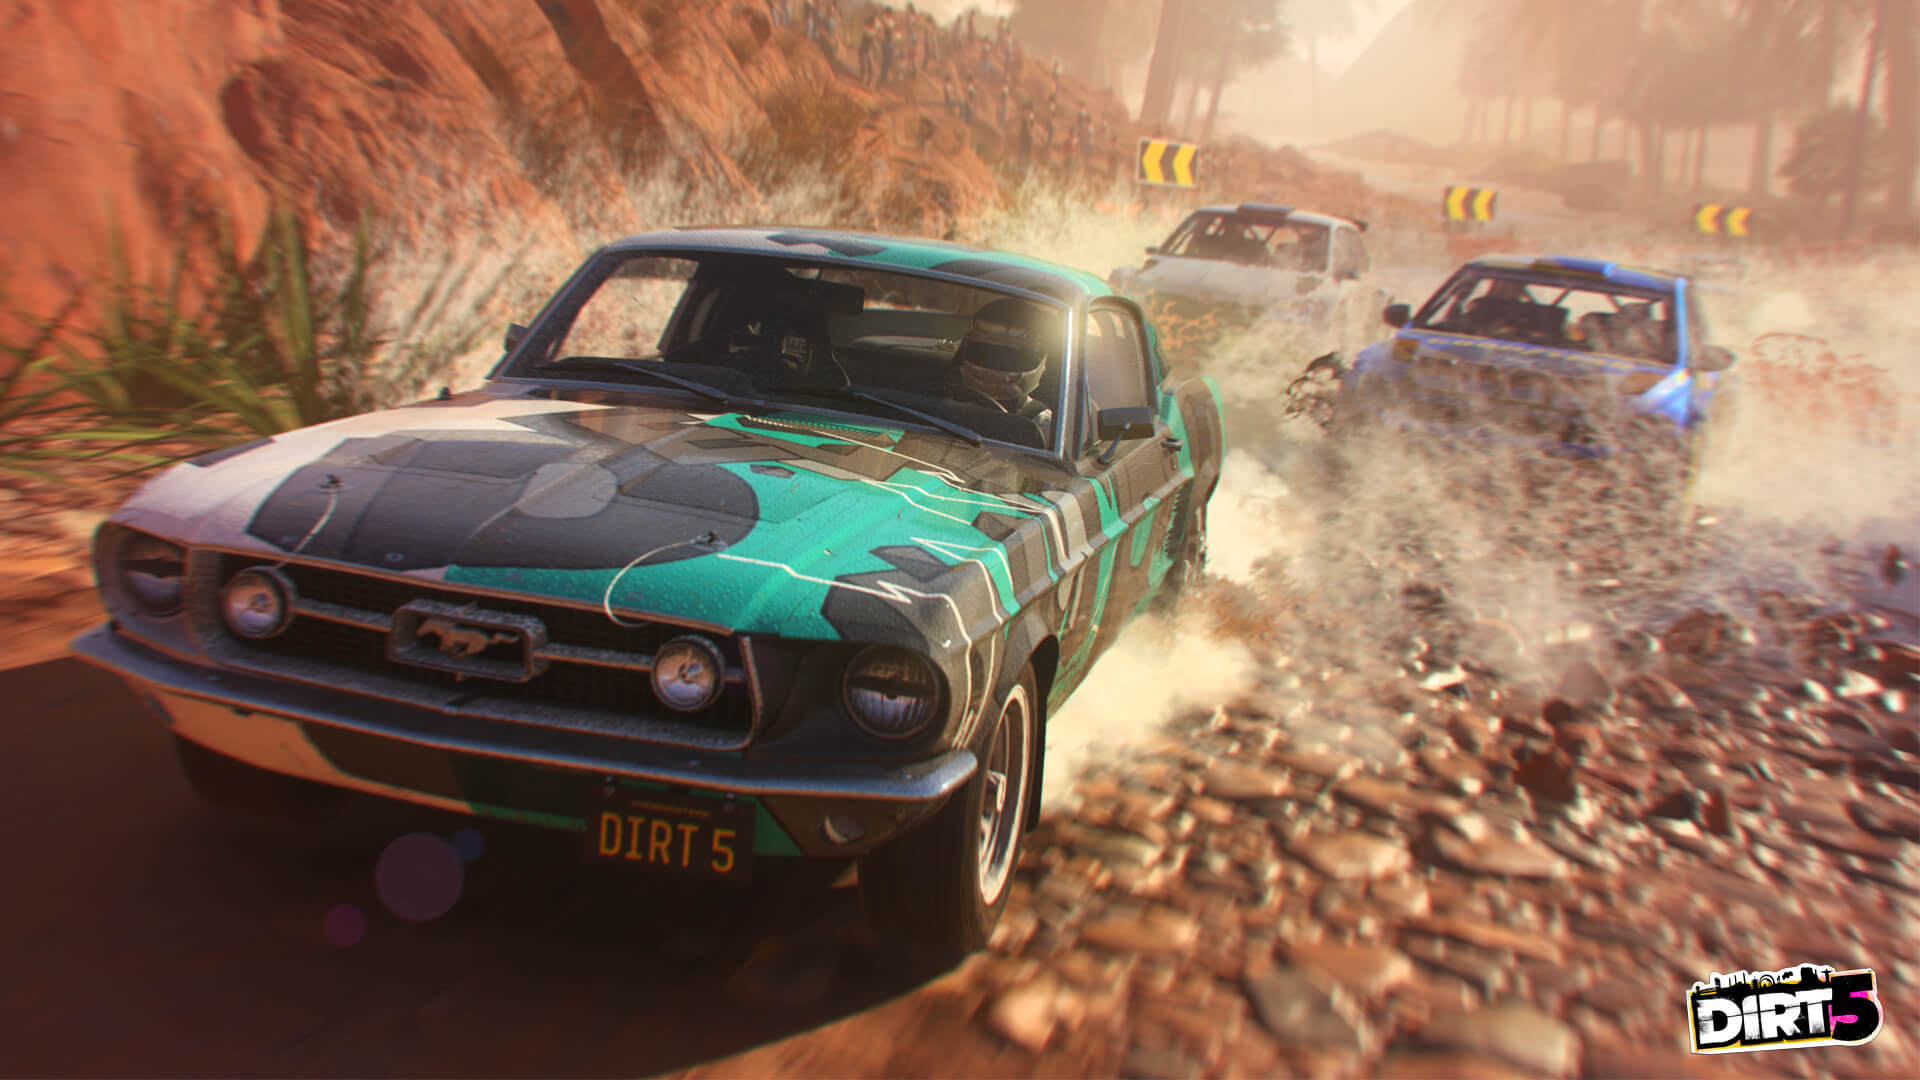 DIRT 5: Locations and Events Revealed